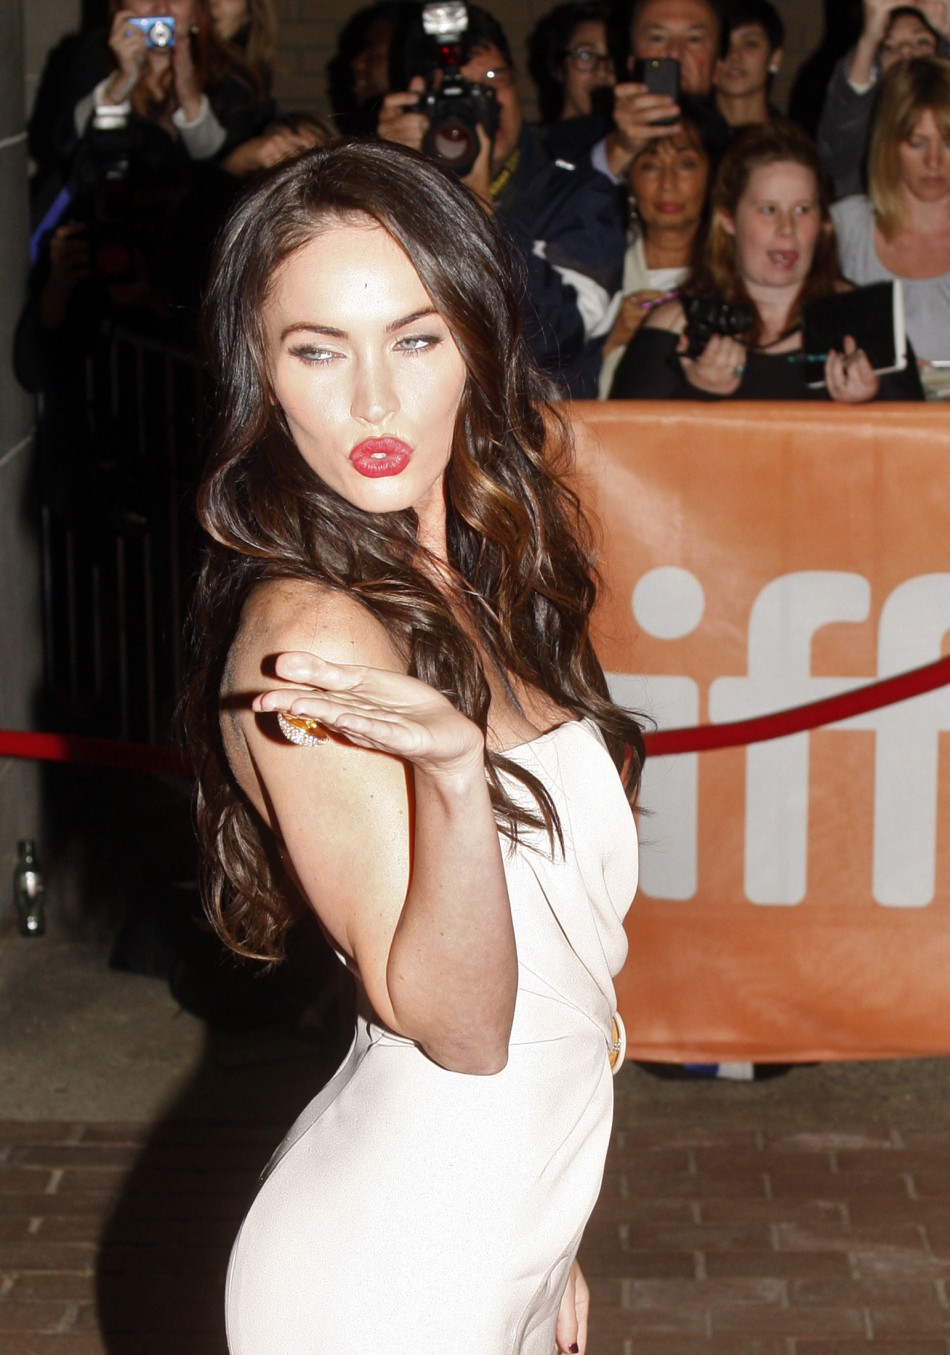 Megan Fox at Toronto Film Festival